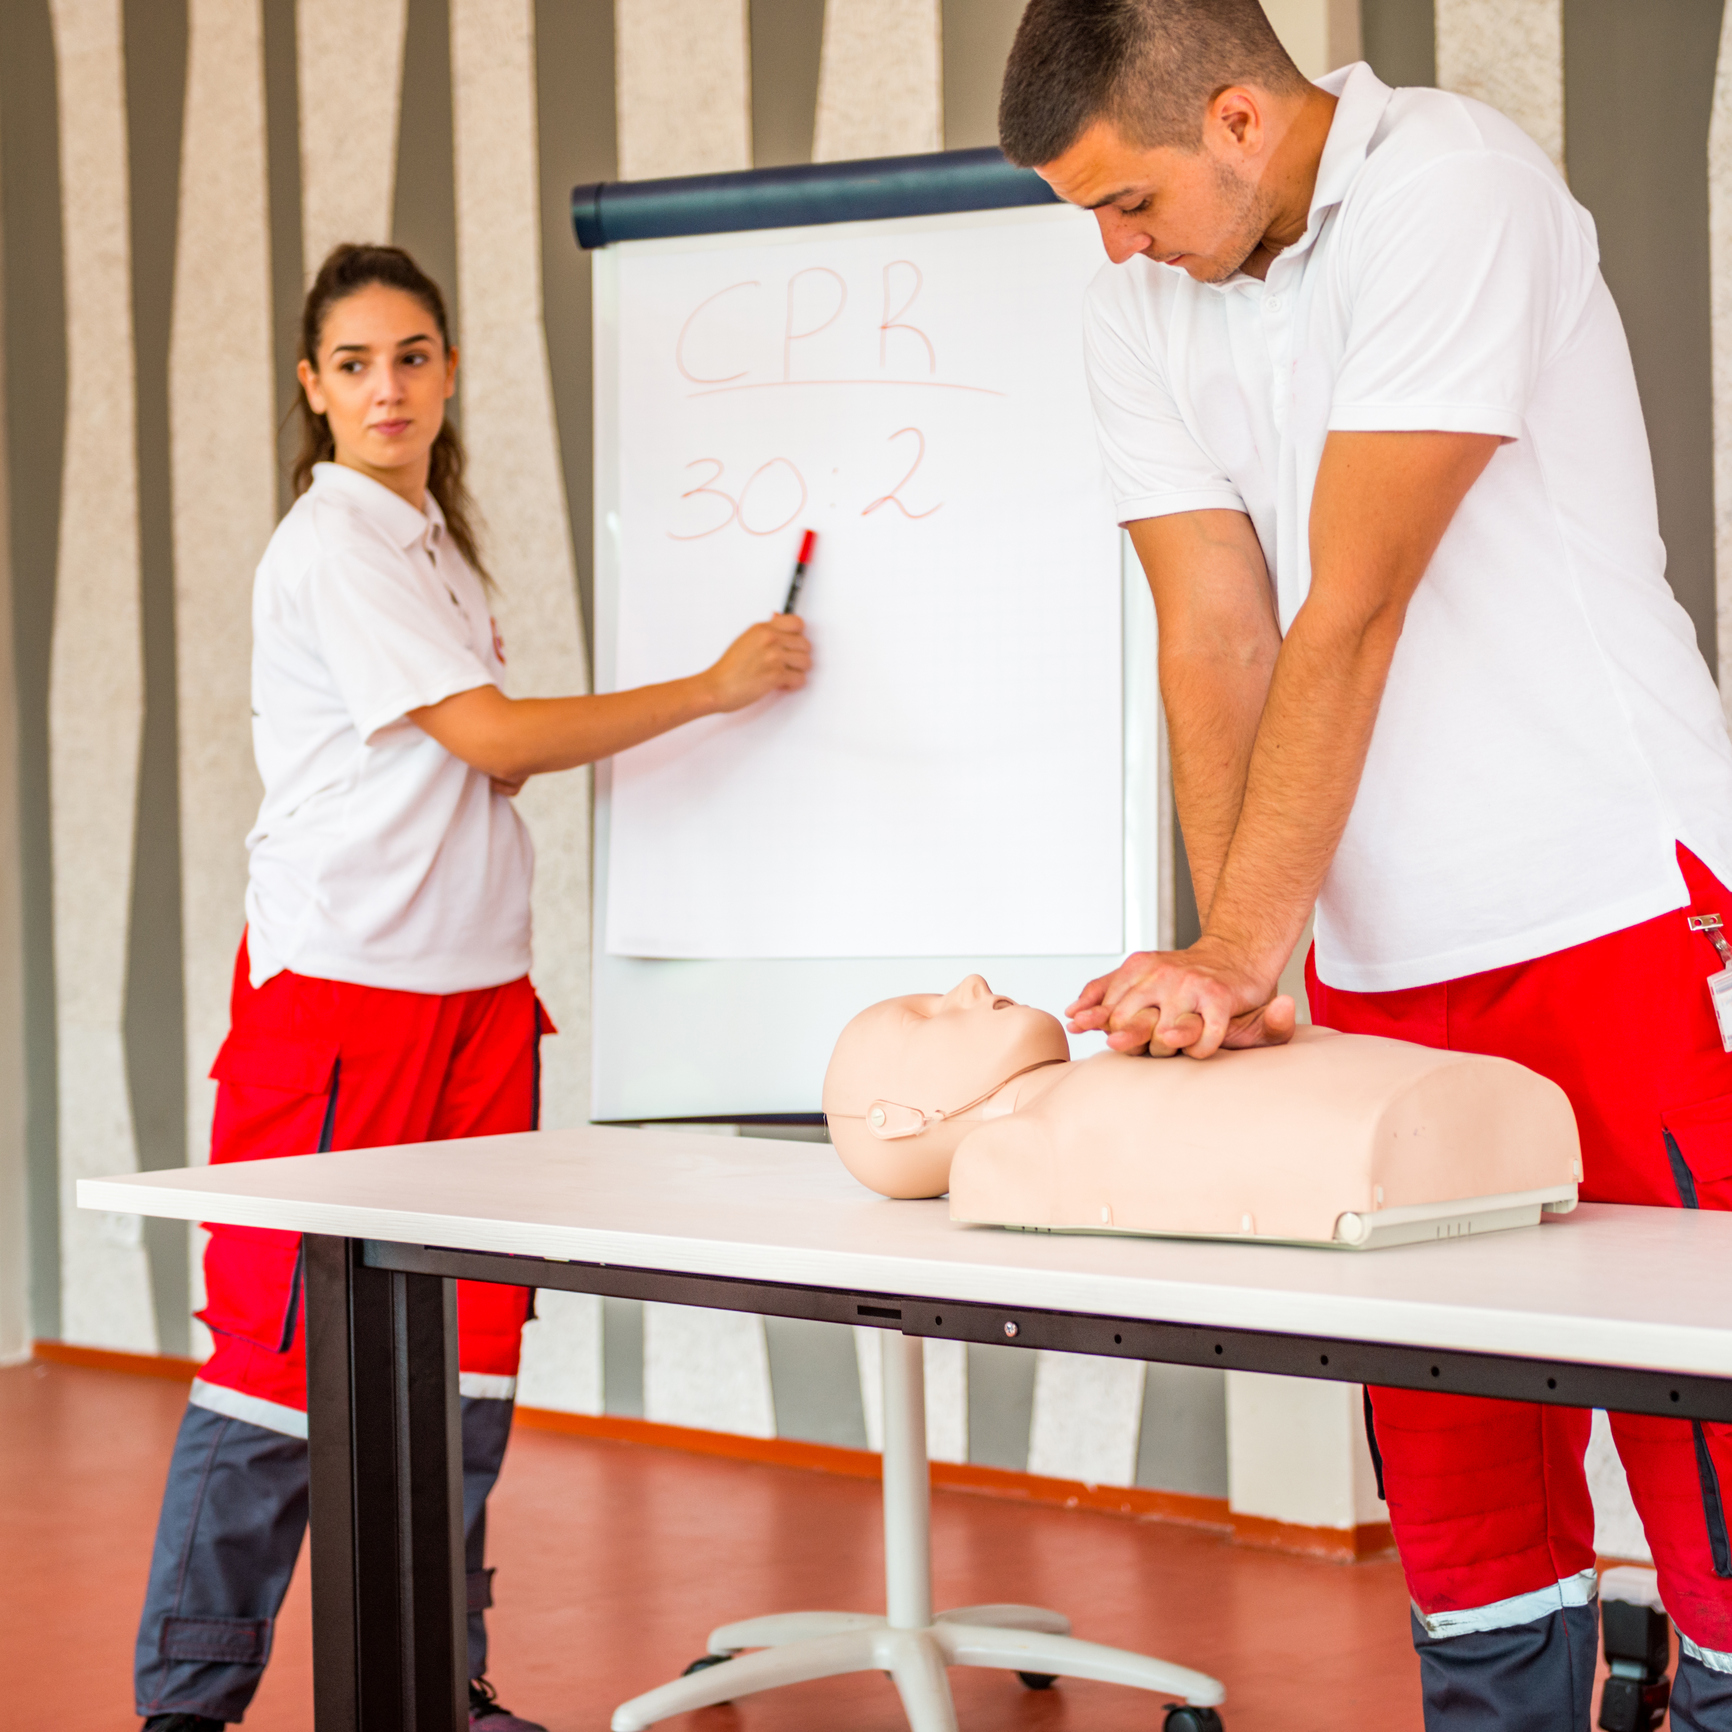 CPR class with instructors talking and demonstrating first aid technique on a CPR dummy